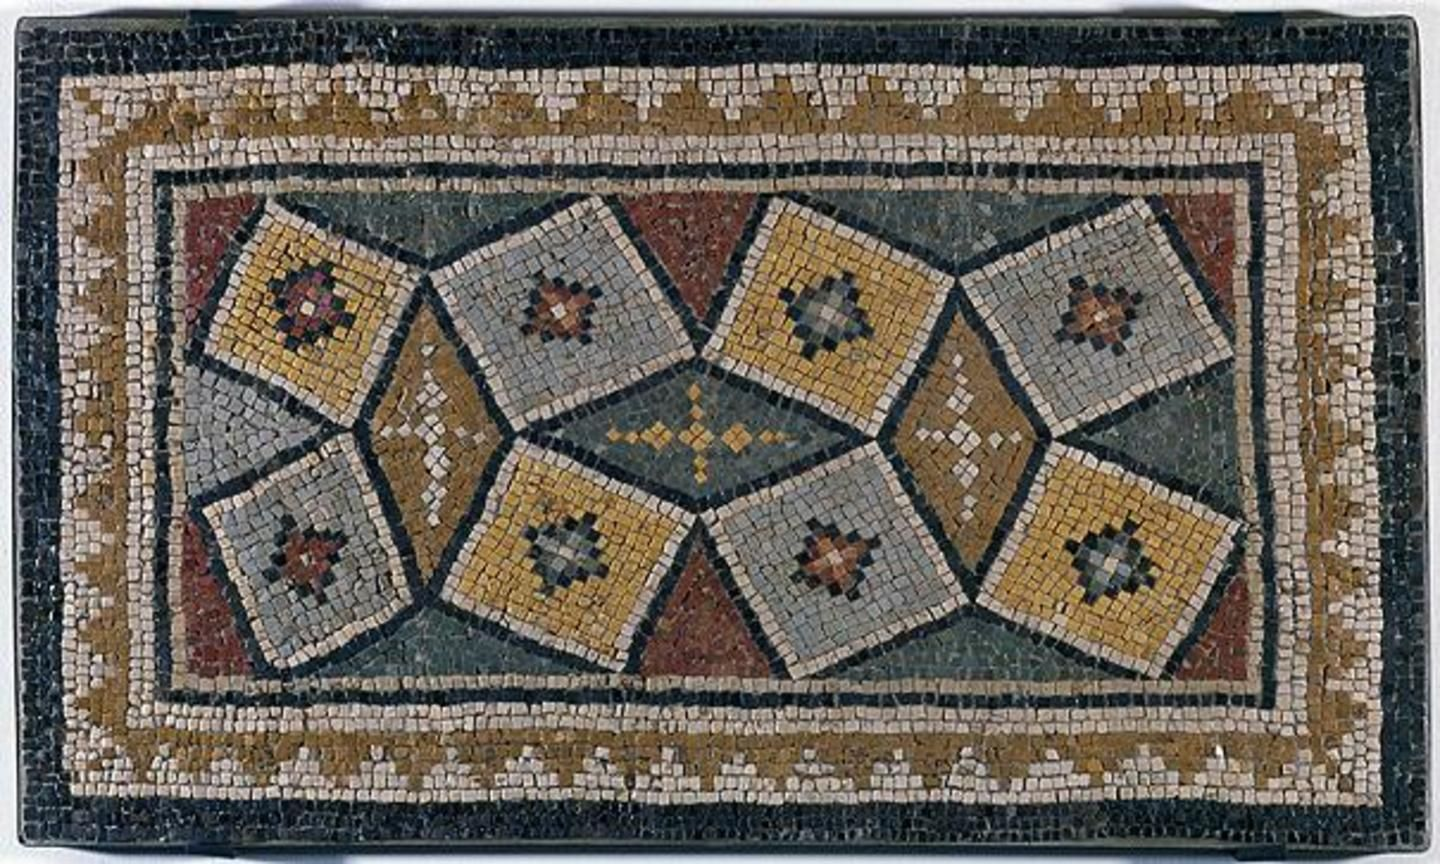 Roman Empire, Mosaic Panel, 1st to 2nd Century, Stone, Museum Purchase through funds from Beaux Arts